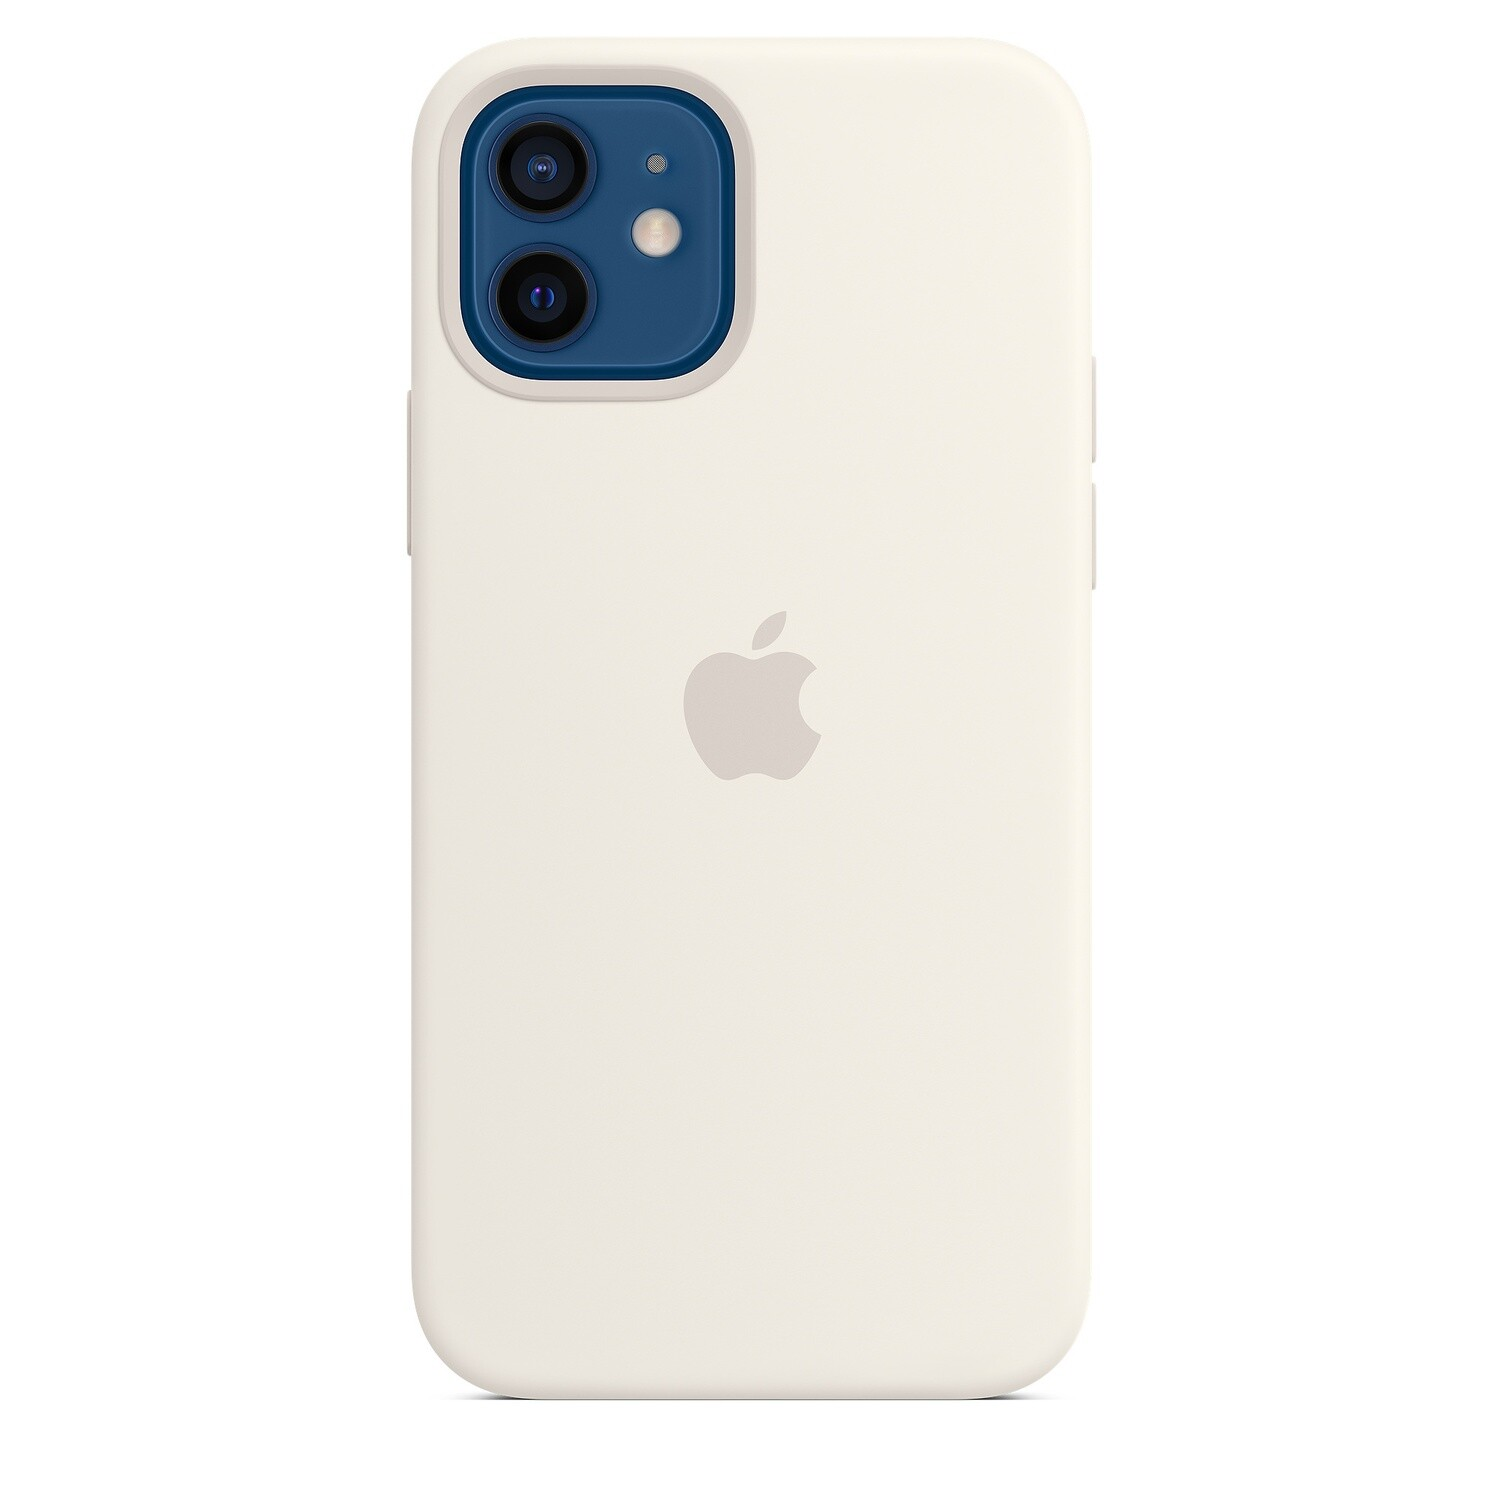 Case de Silicona iPhone 12 / Pro - Blanco